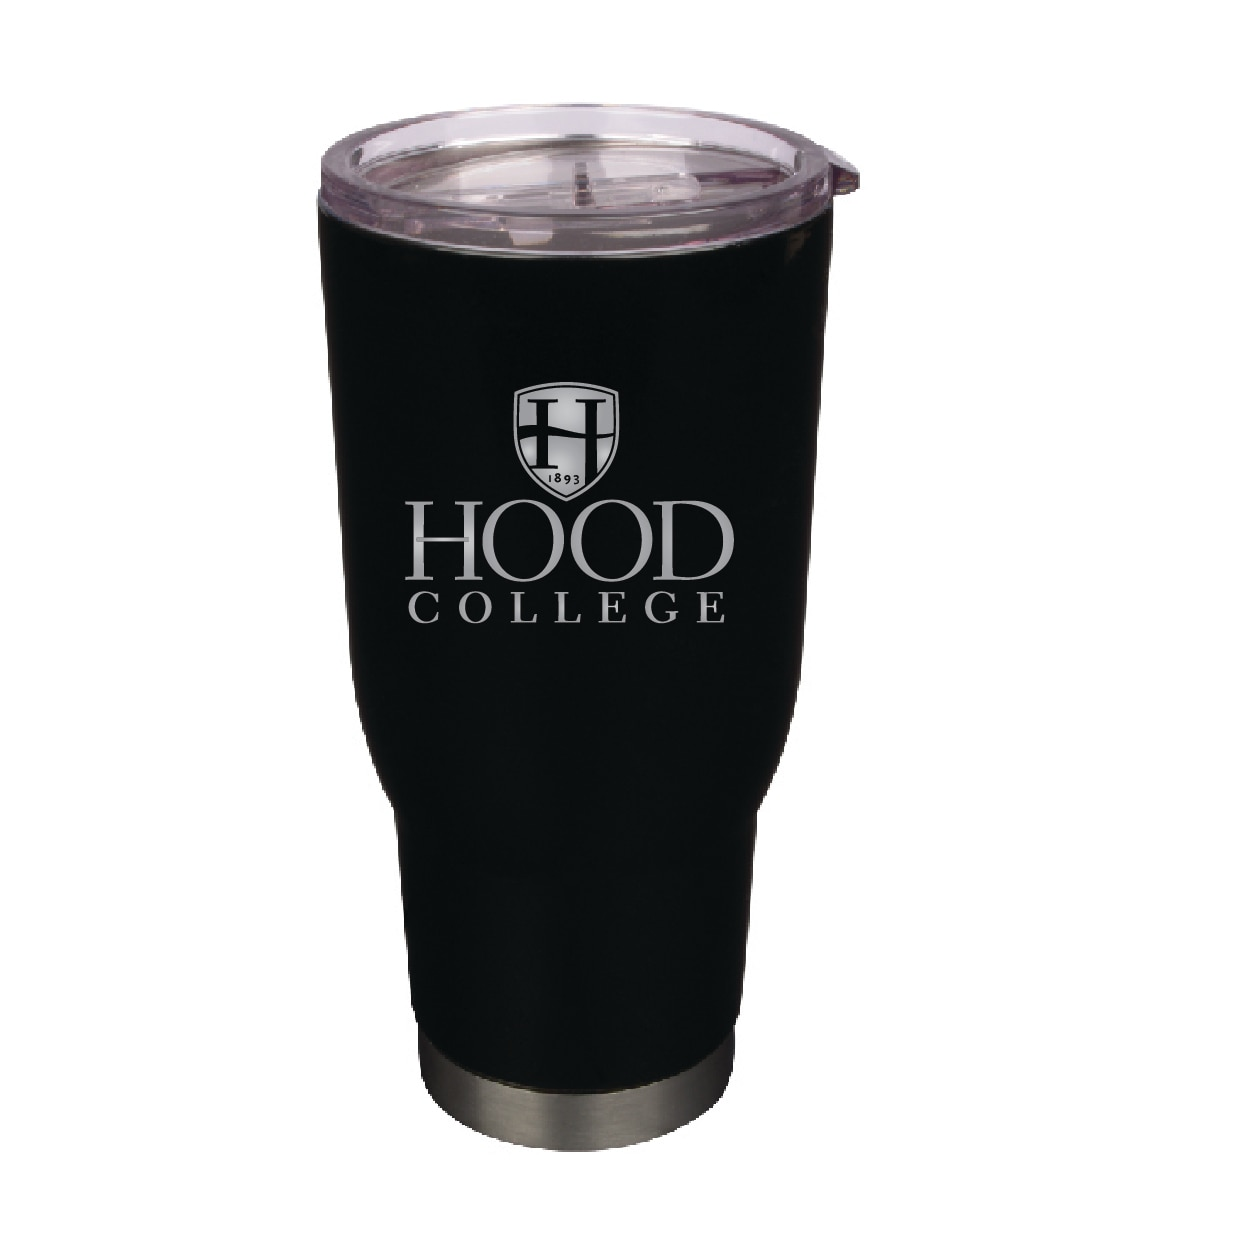 Hood College Official Bookstore 32 oz Stainless Travel Mug